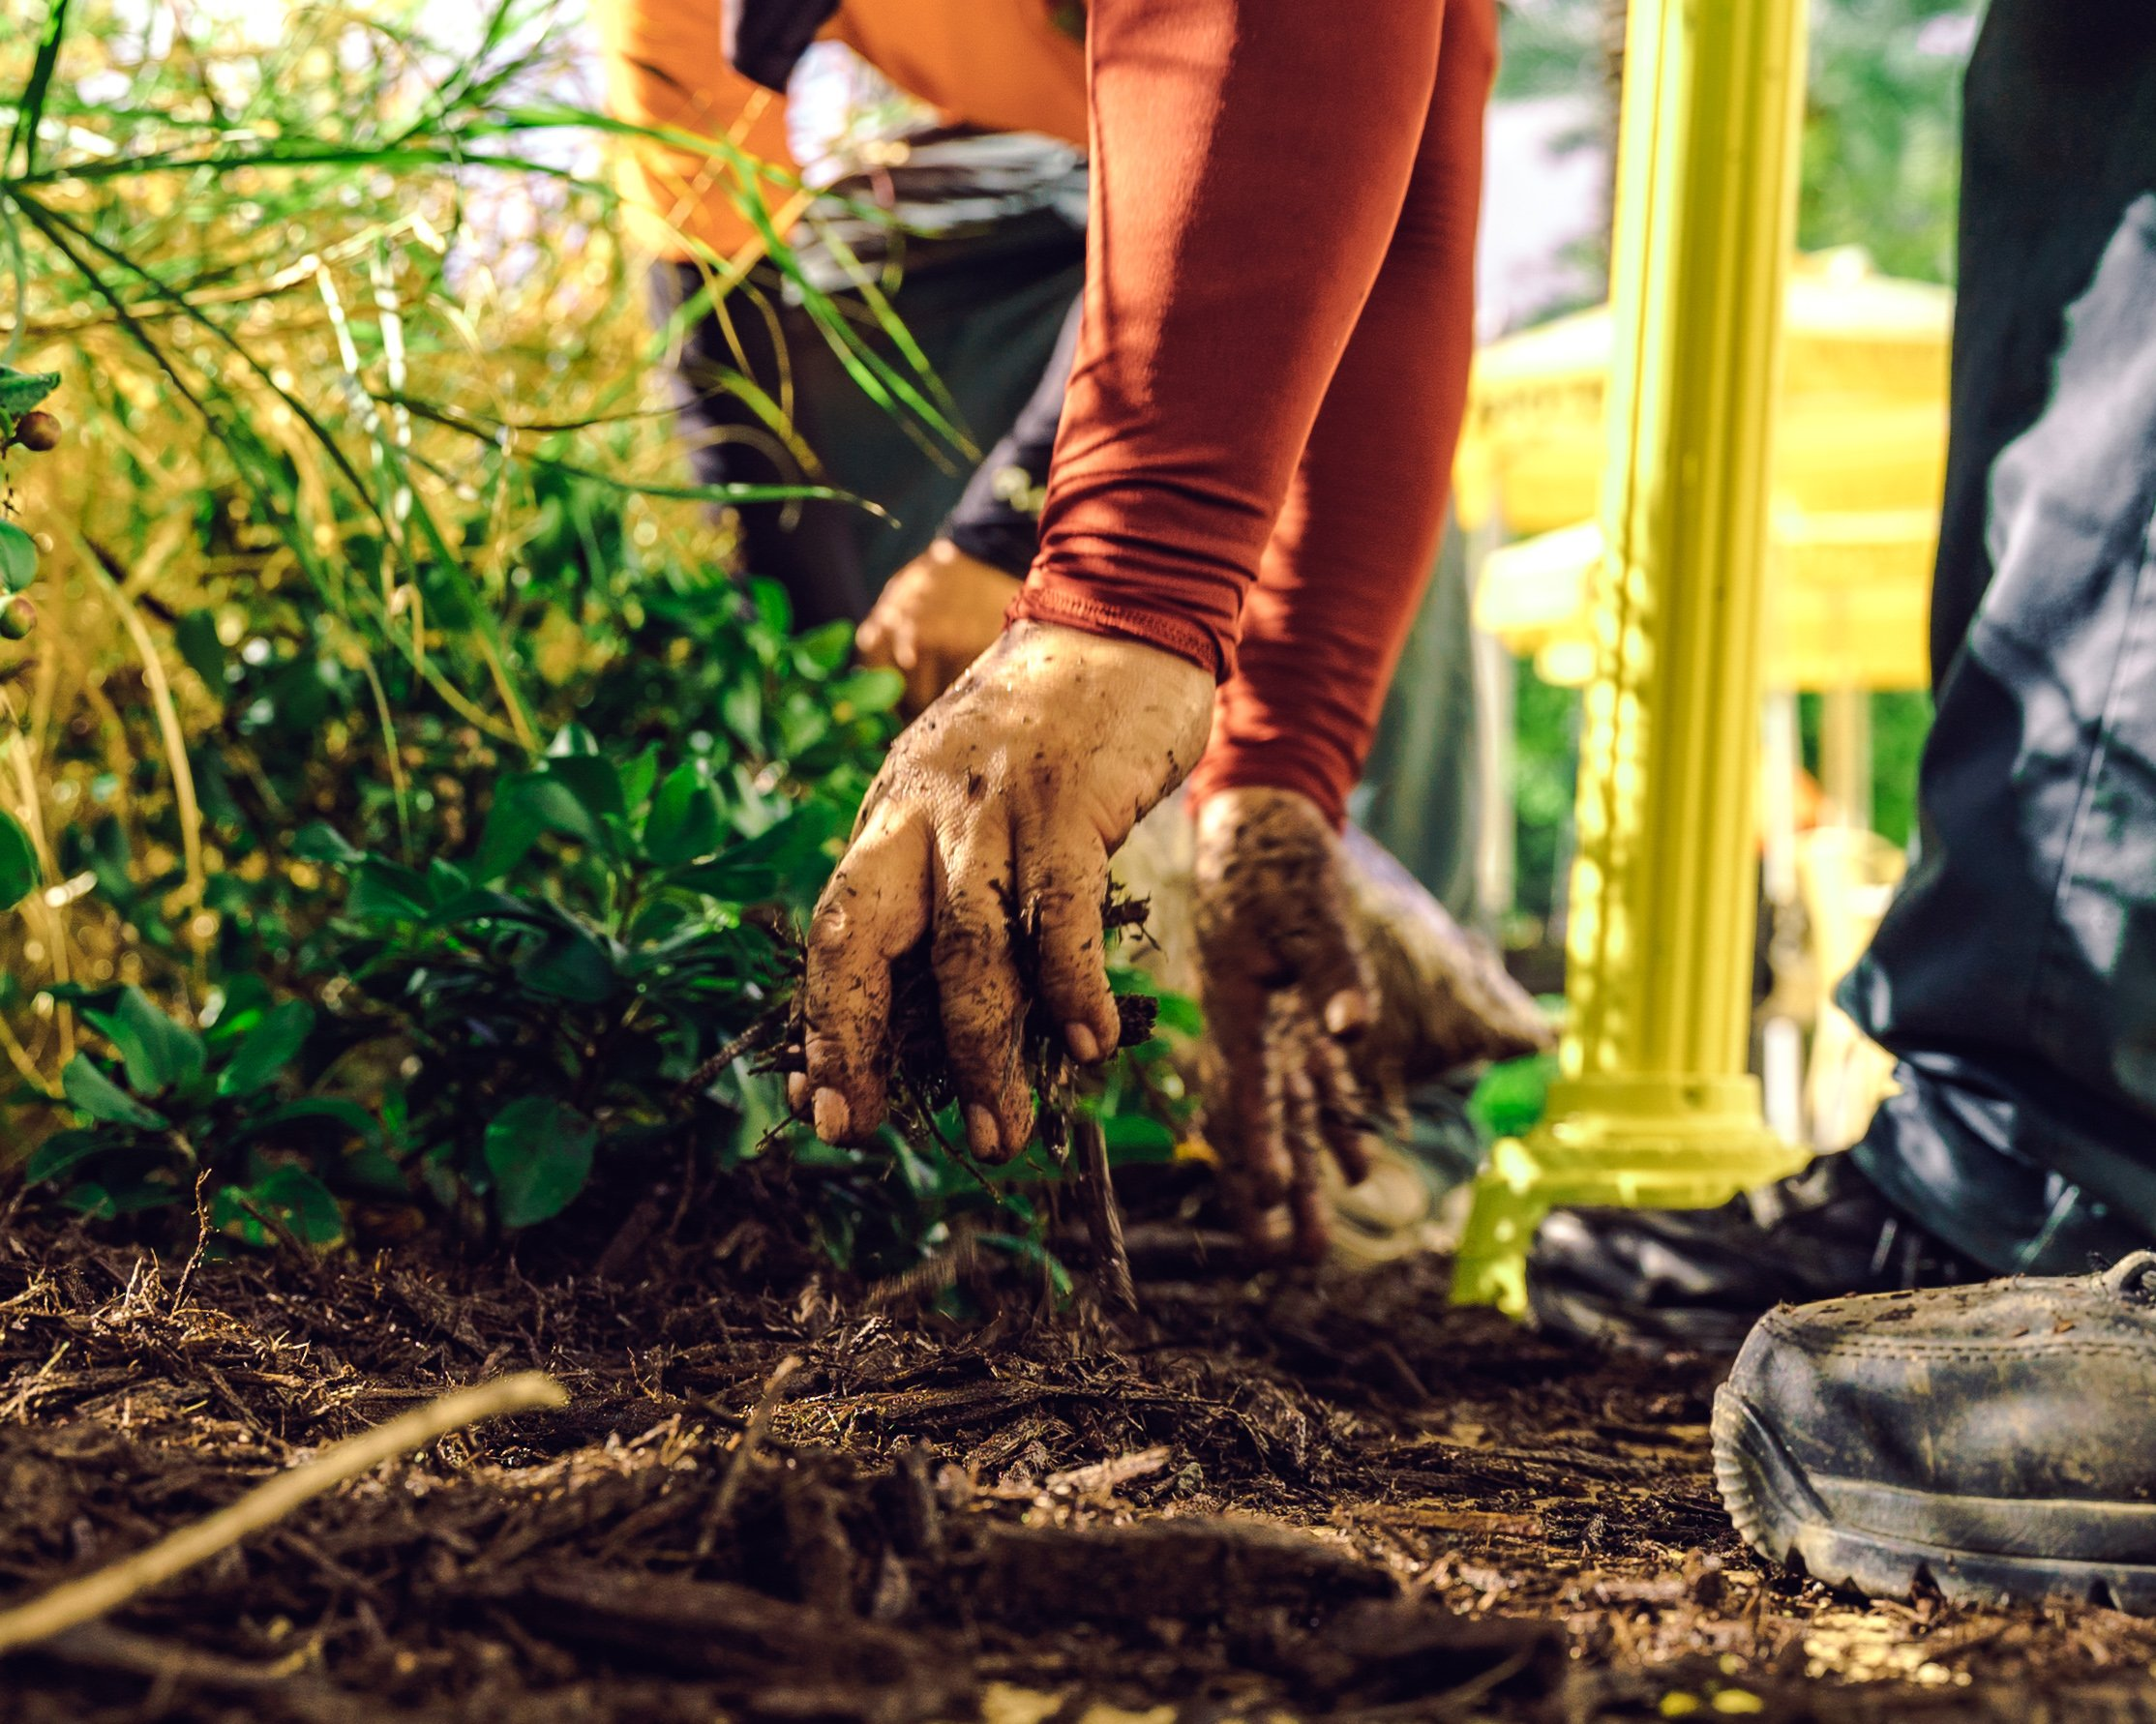 Landscaping as an Essential Service